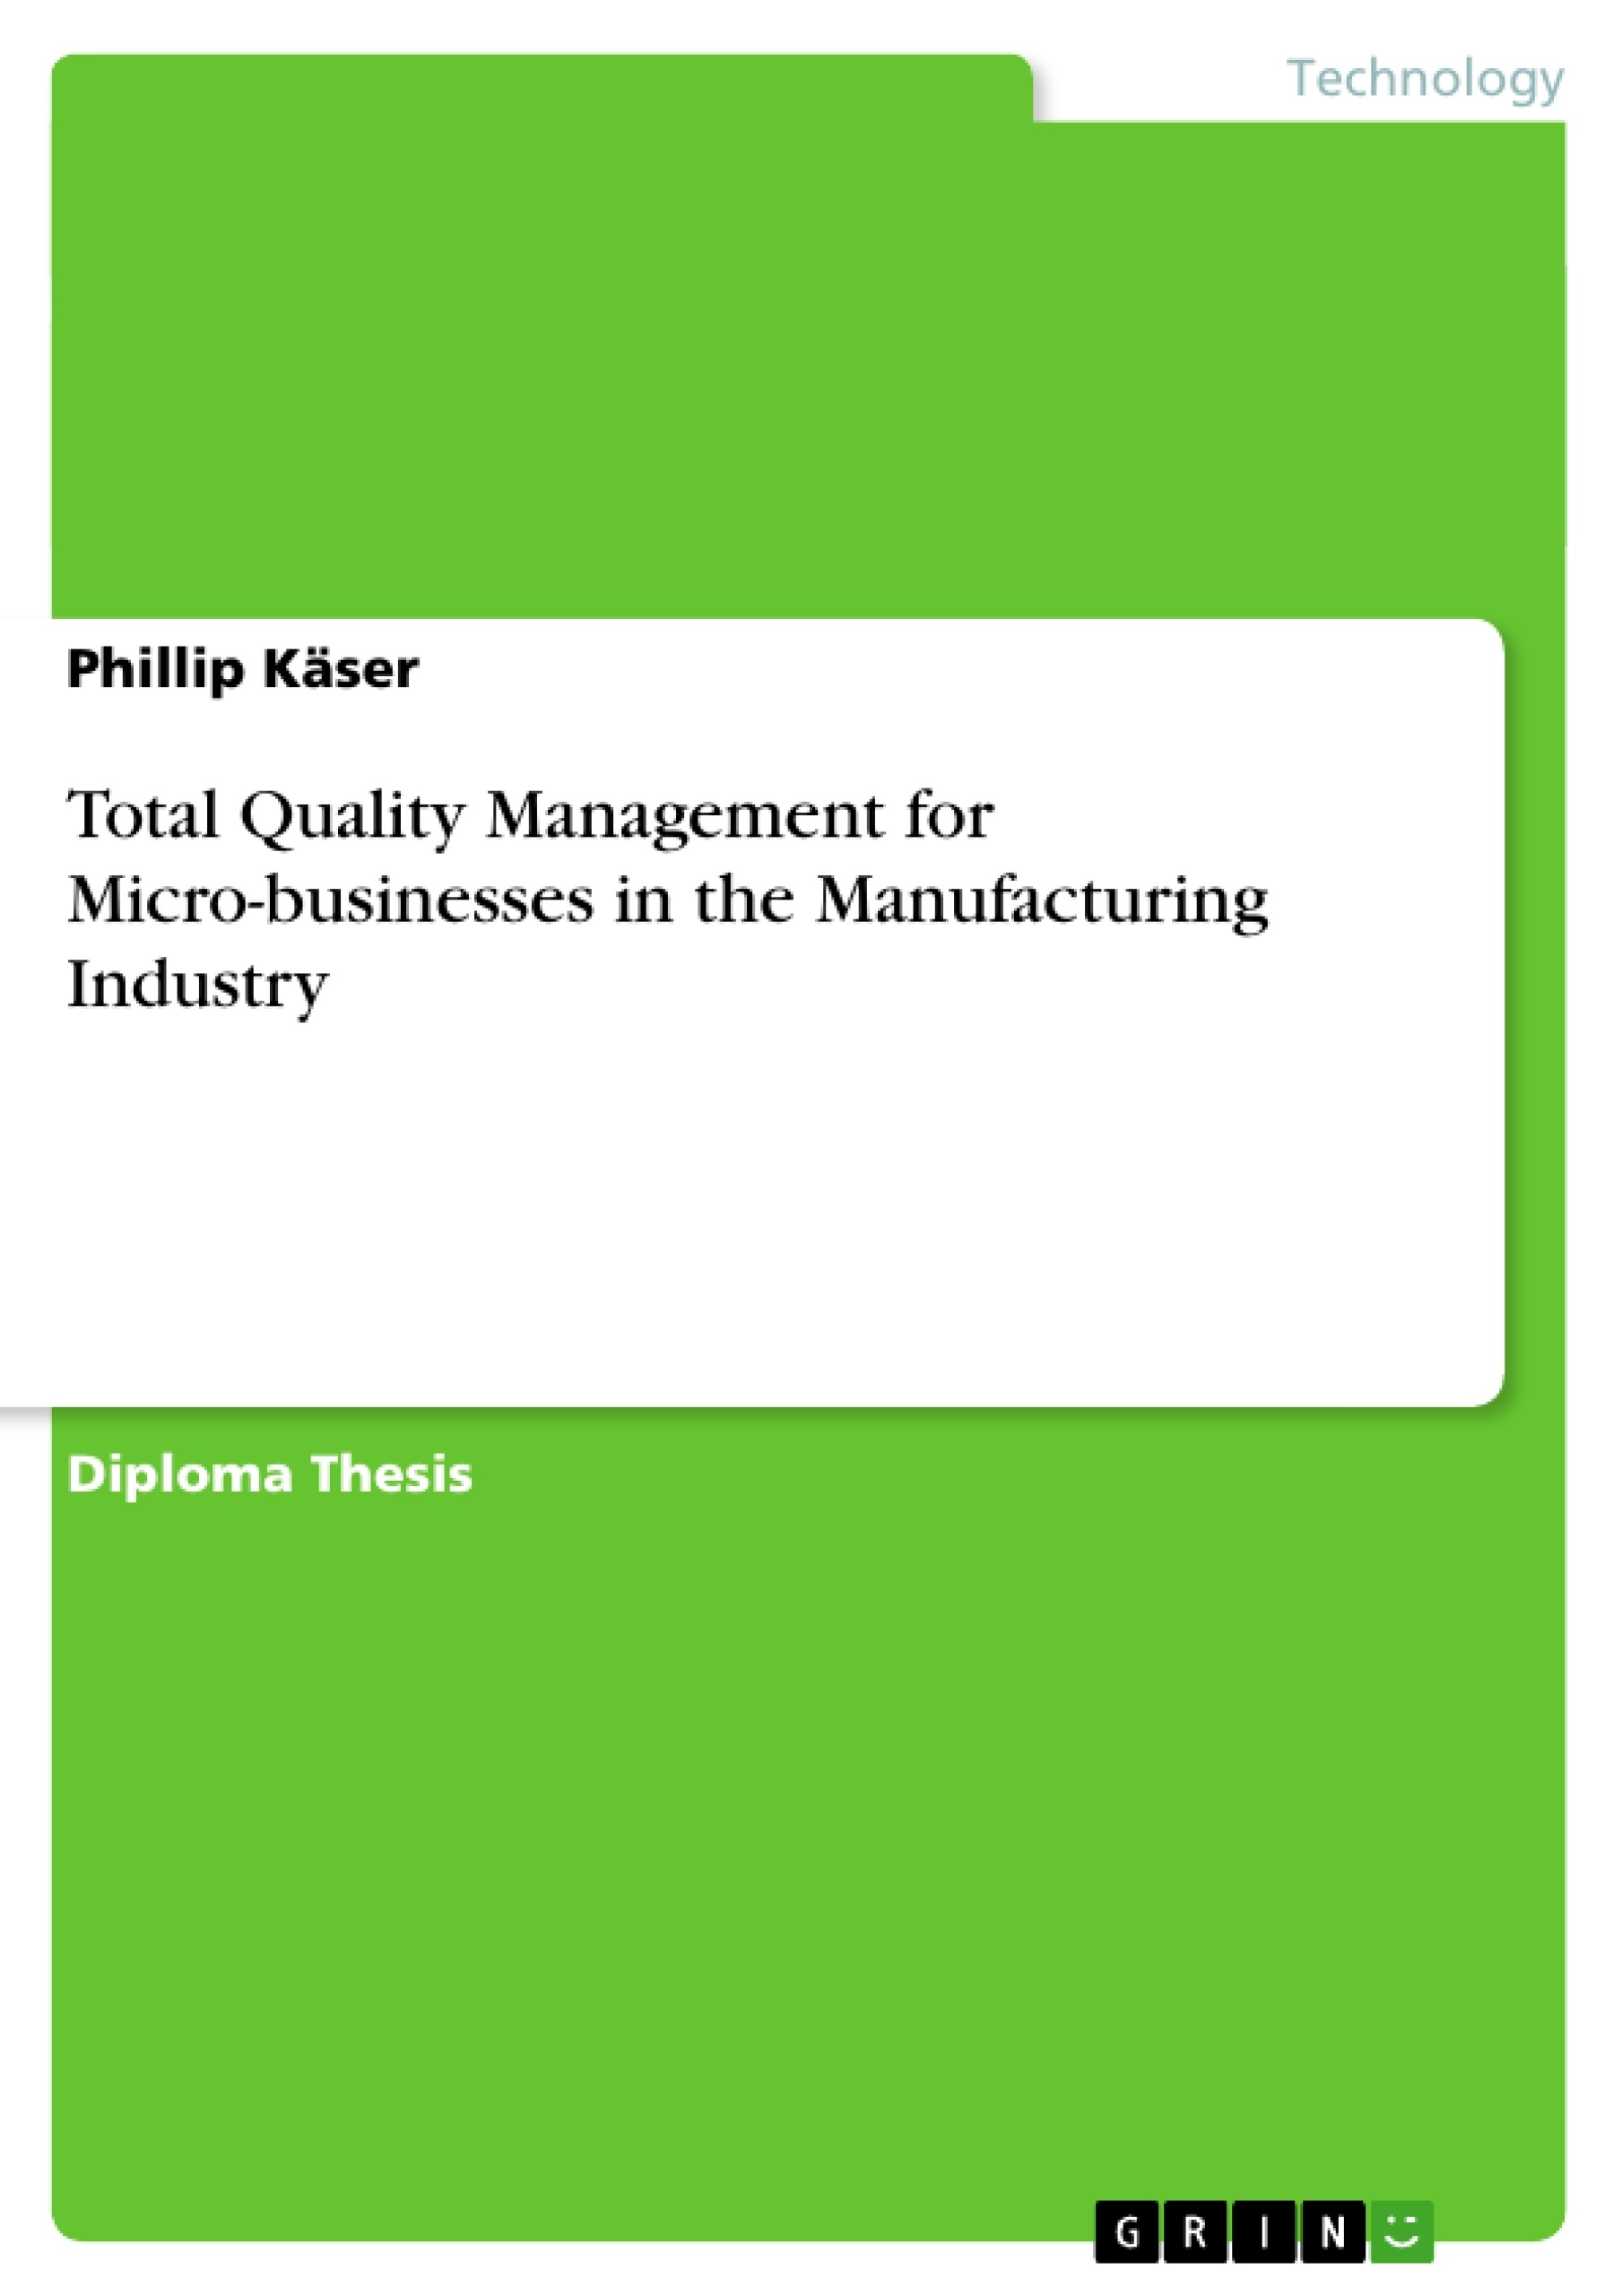 master thesis tqm total quality management for micro businesses in the manufacturing total quality management for micro businesses in the manufacturing